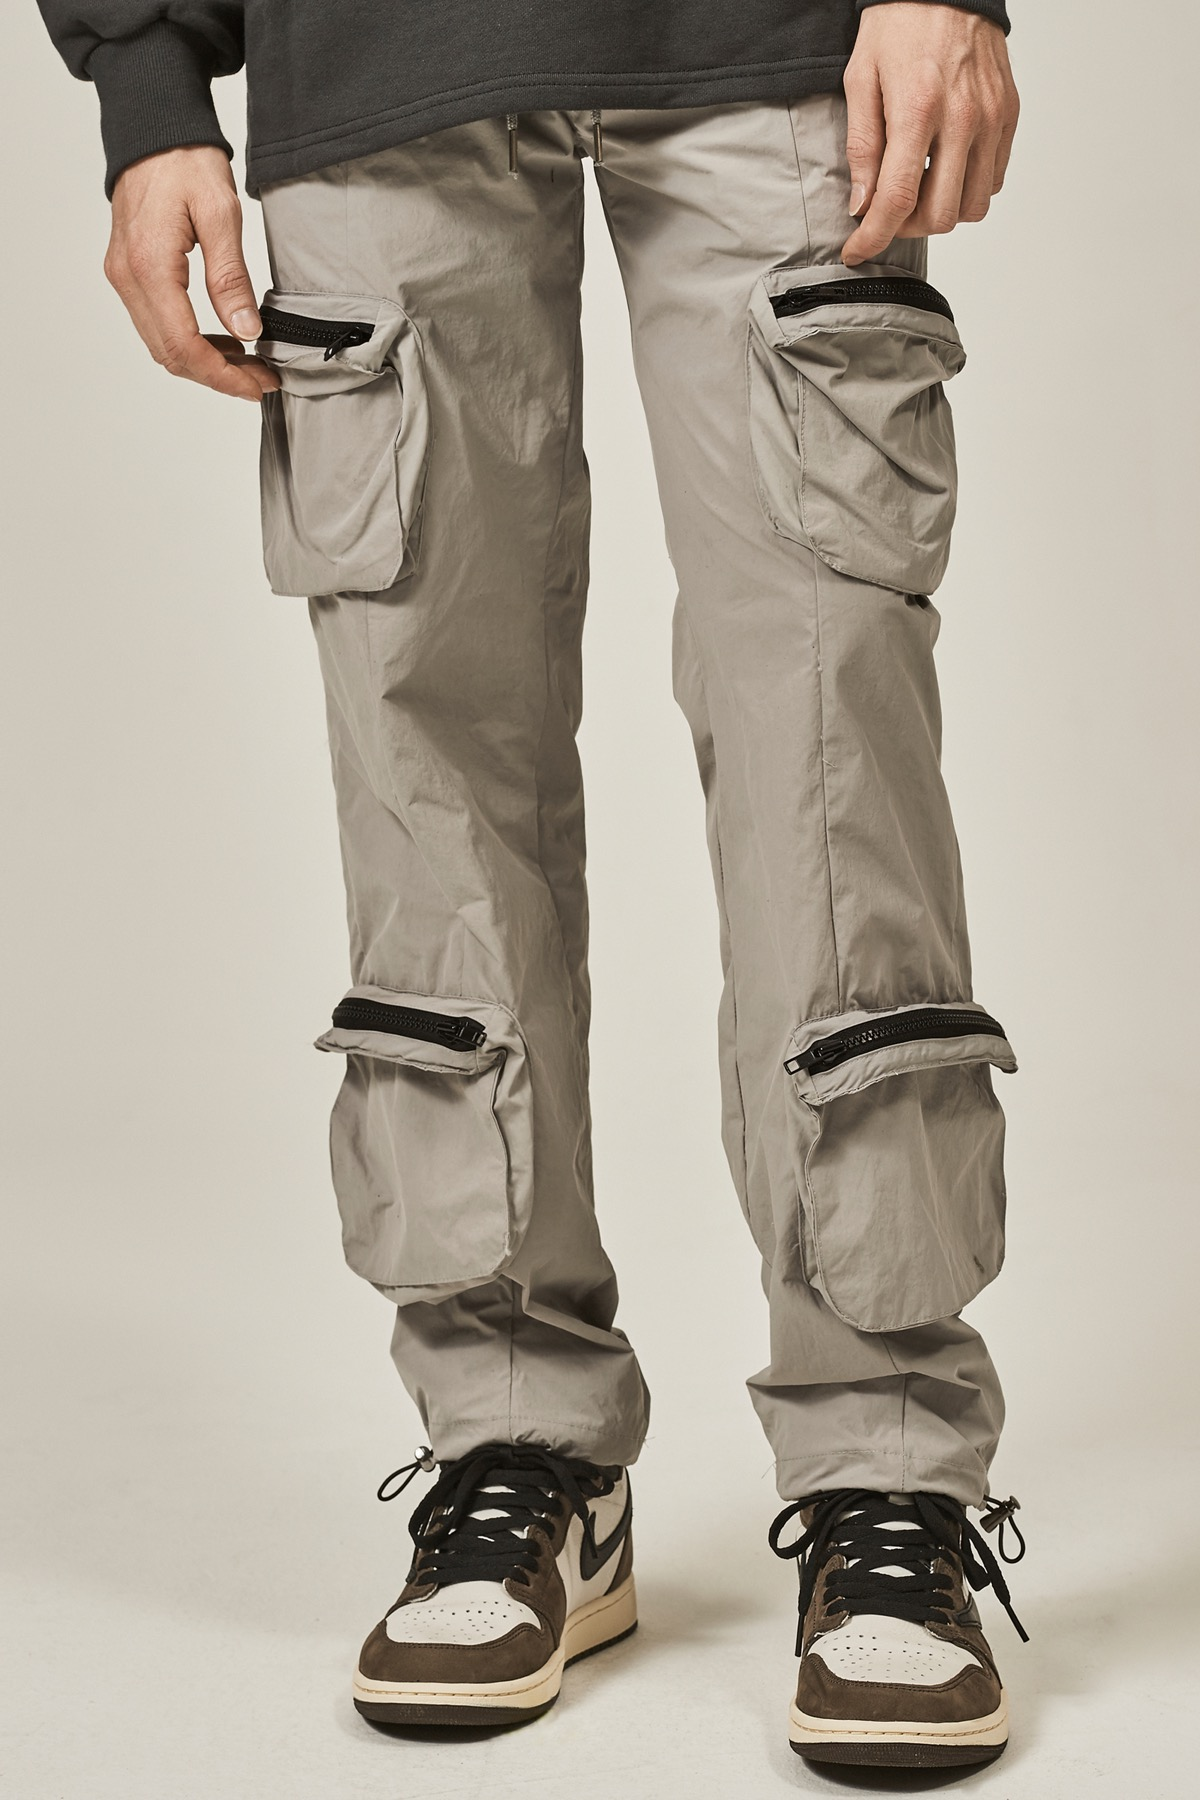 GRAY 4 POCKET CARGO STRING PANTS